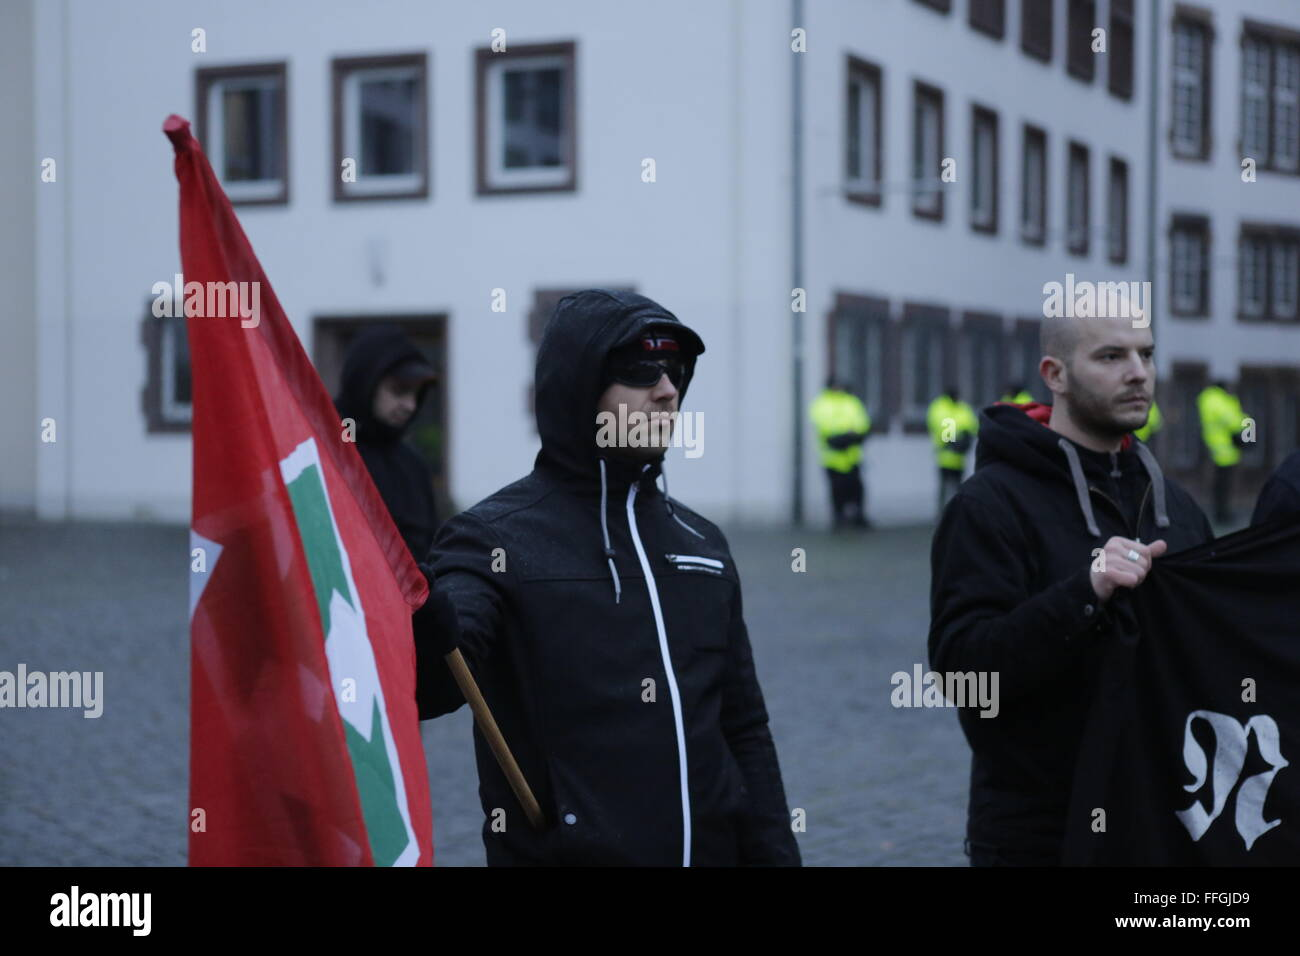 Worms, Germany. 13th Feb, 2016. The right wing protesters hold a small rally at the market square of Worms. A Hungarian Stock Photo